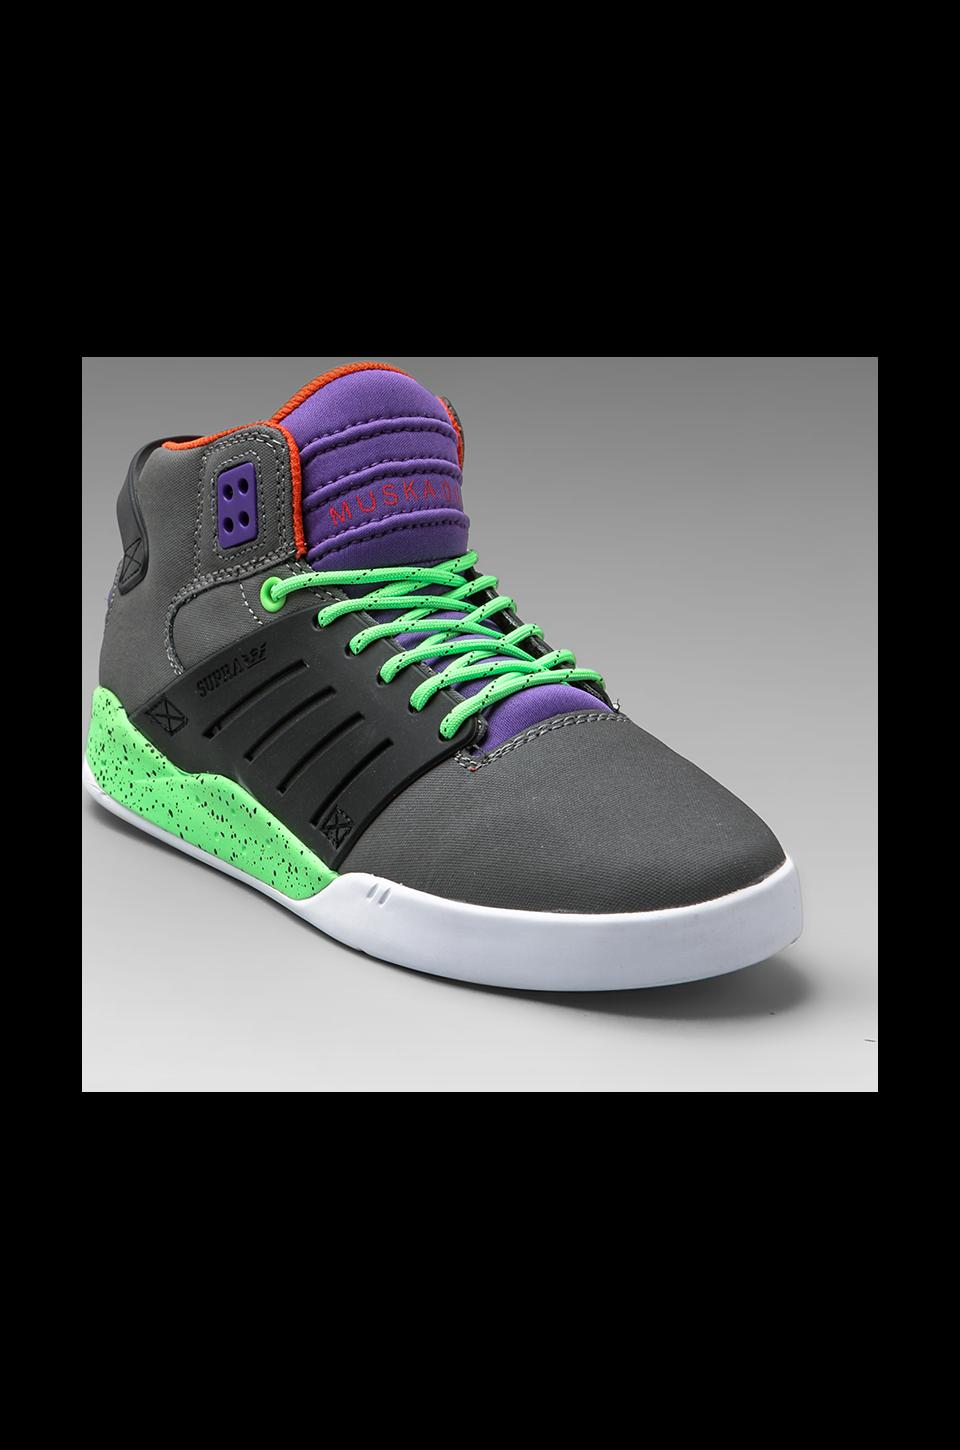 Supra Skytop III in Charcoal/Black/Lime